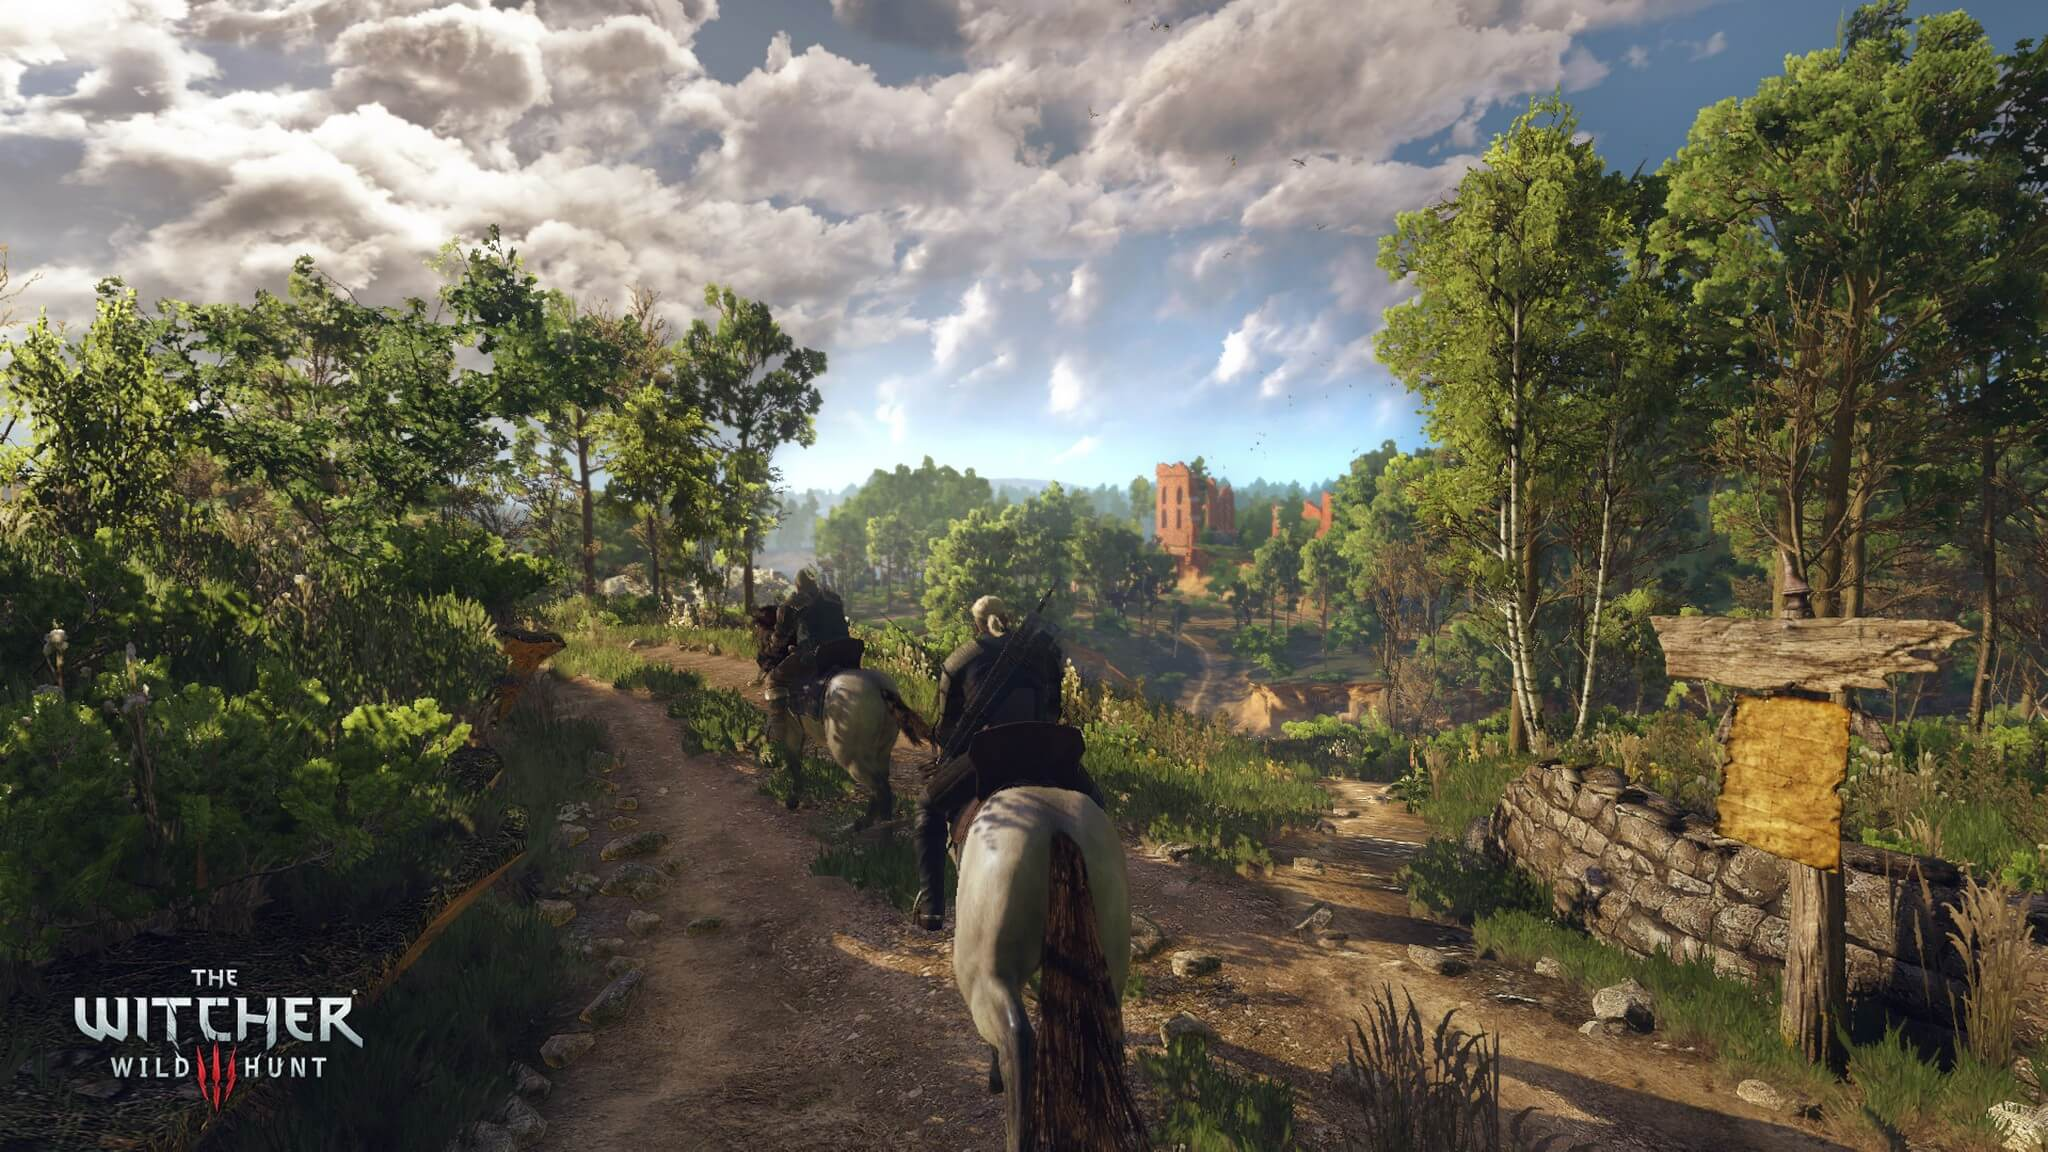 Witcher 3: Wild Hunt Forest Riding